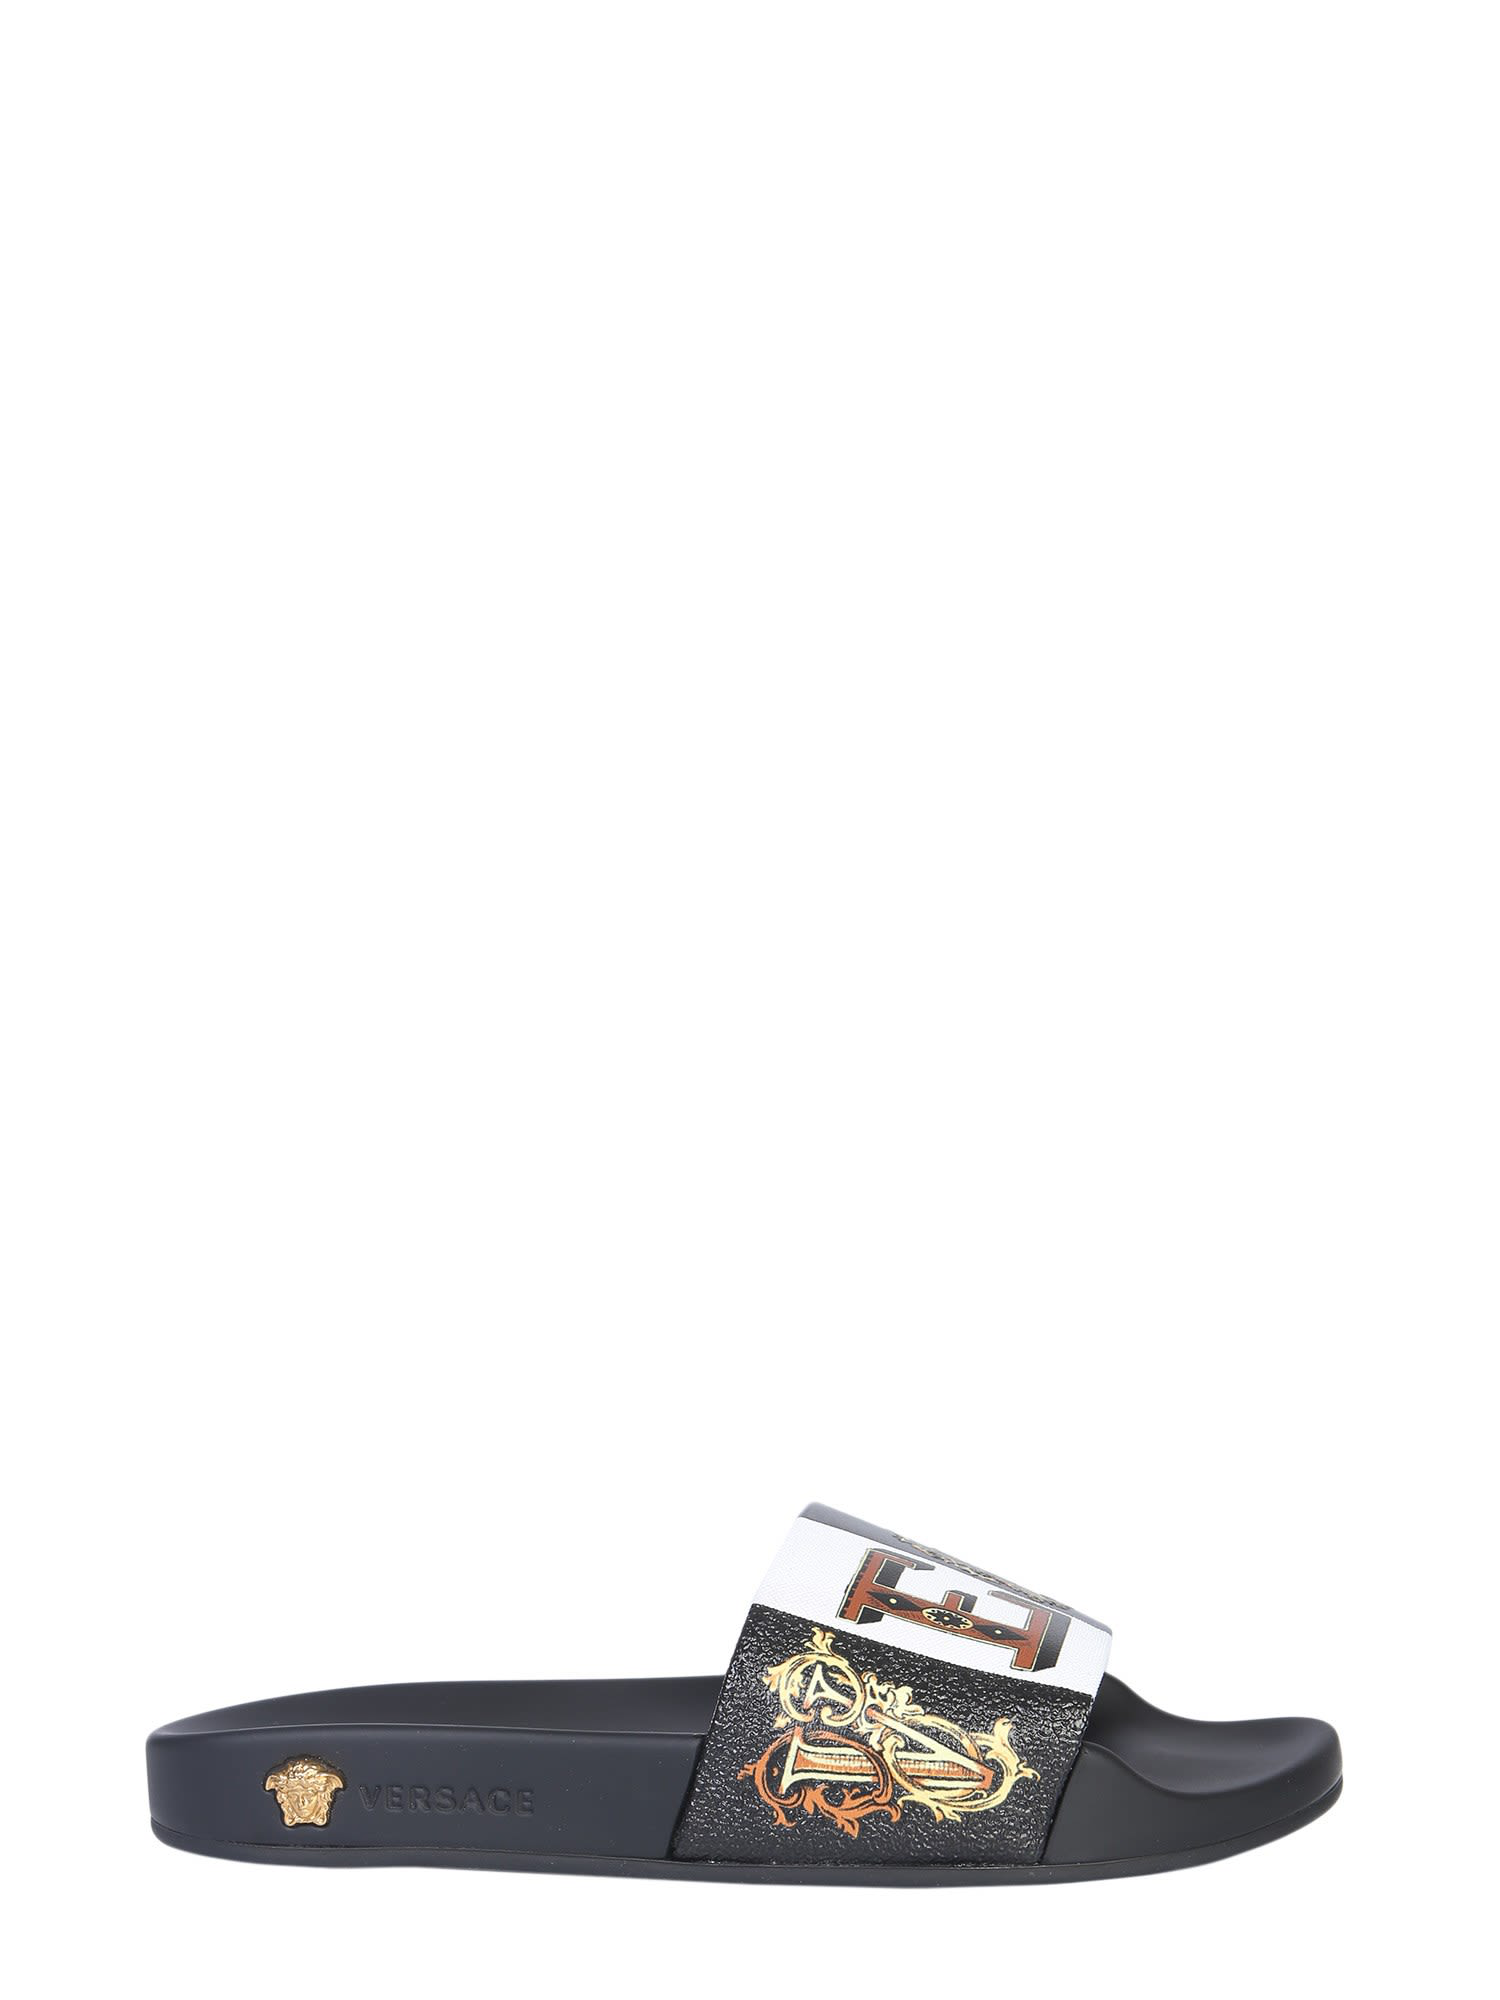 20c615253c57 Versace Printed Rubber And Leather Slides In Black